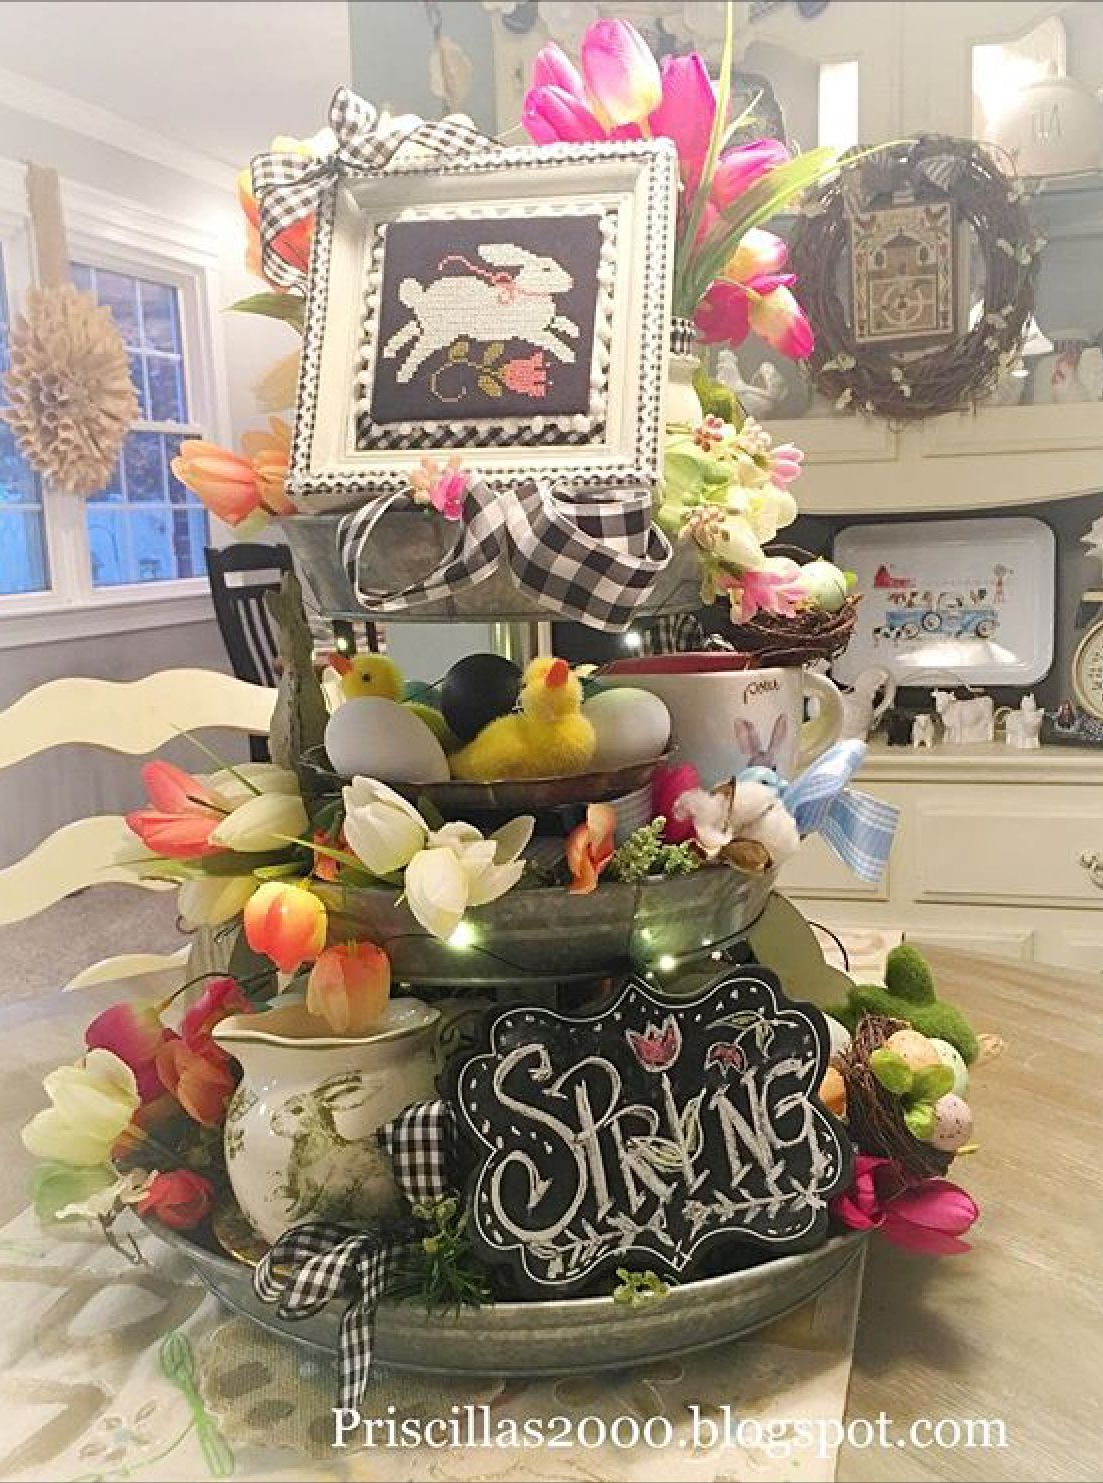 Wedding tray decoration ideas  Spring tiered tray  Easter  Pinterest  Trays Easter and Tray decor